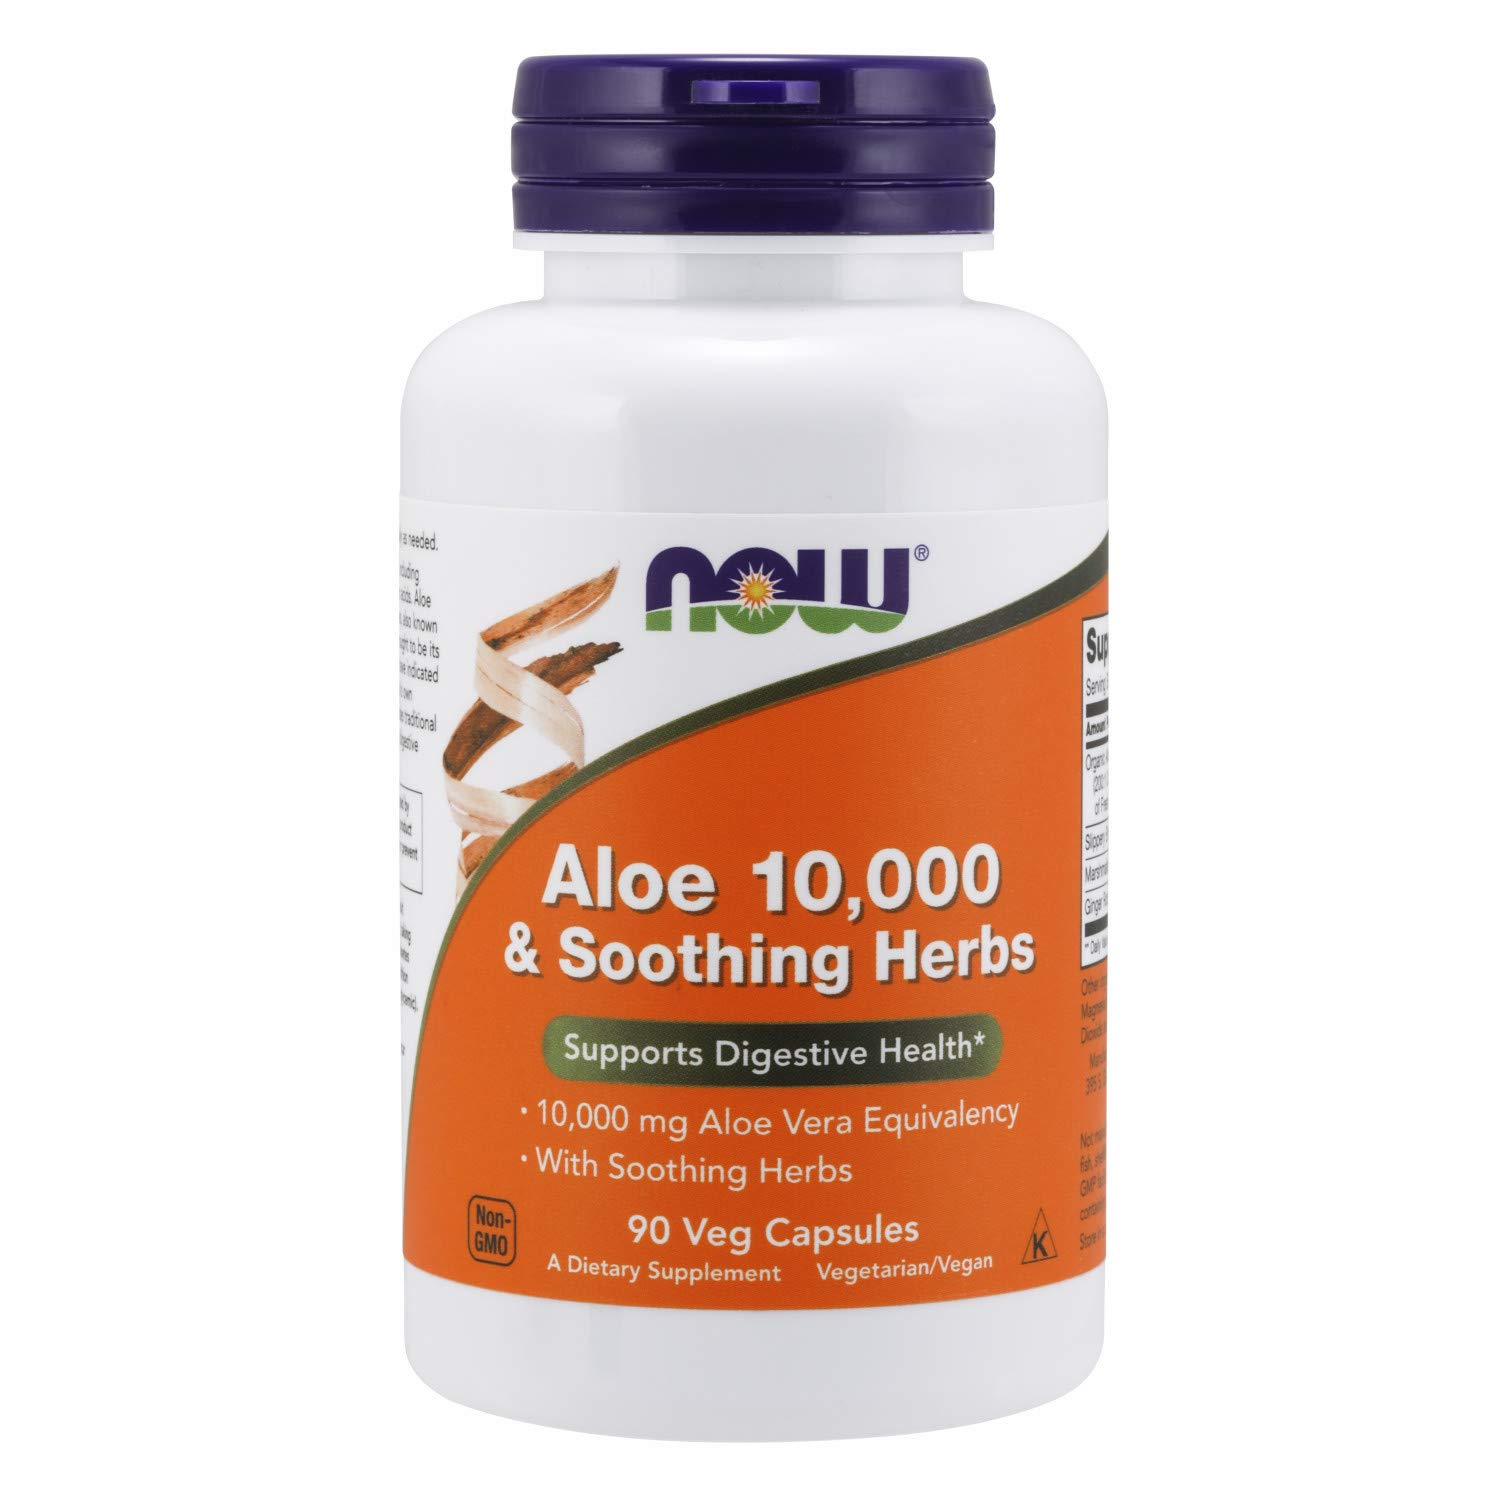 NOW Supplements, Aloe 10,000 & Soothing Herbs with 10,000 mg Aloe Vera Equivalency, 90 Veg Capsules